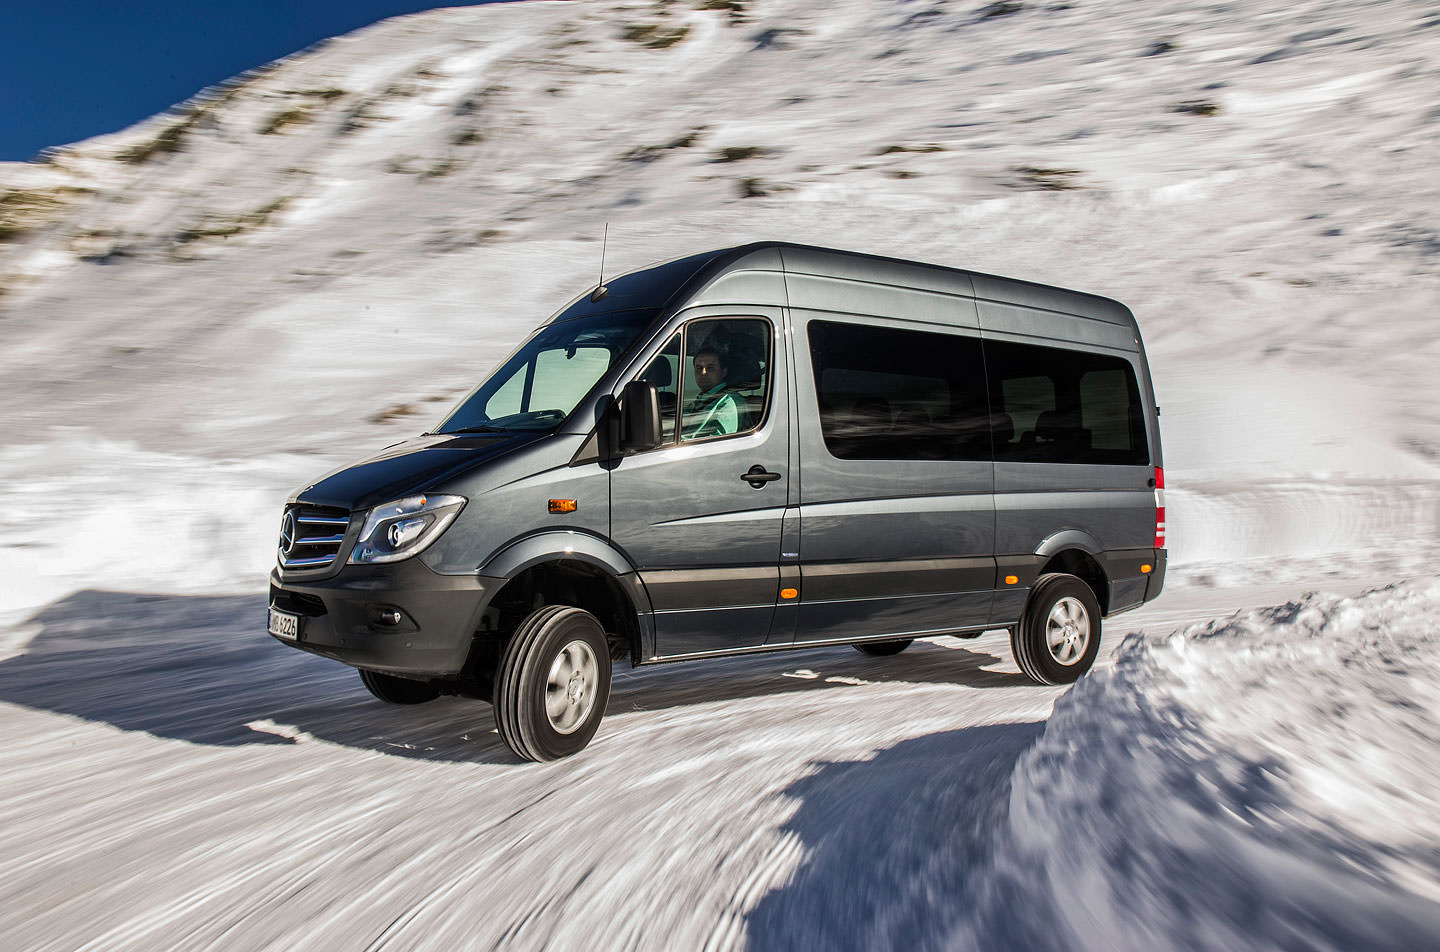 Noul Sprinter 2018 >> mercedes sprinter 319 cdi bluetec 4×4 facelift 2014 (10) | WHATTRUCK